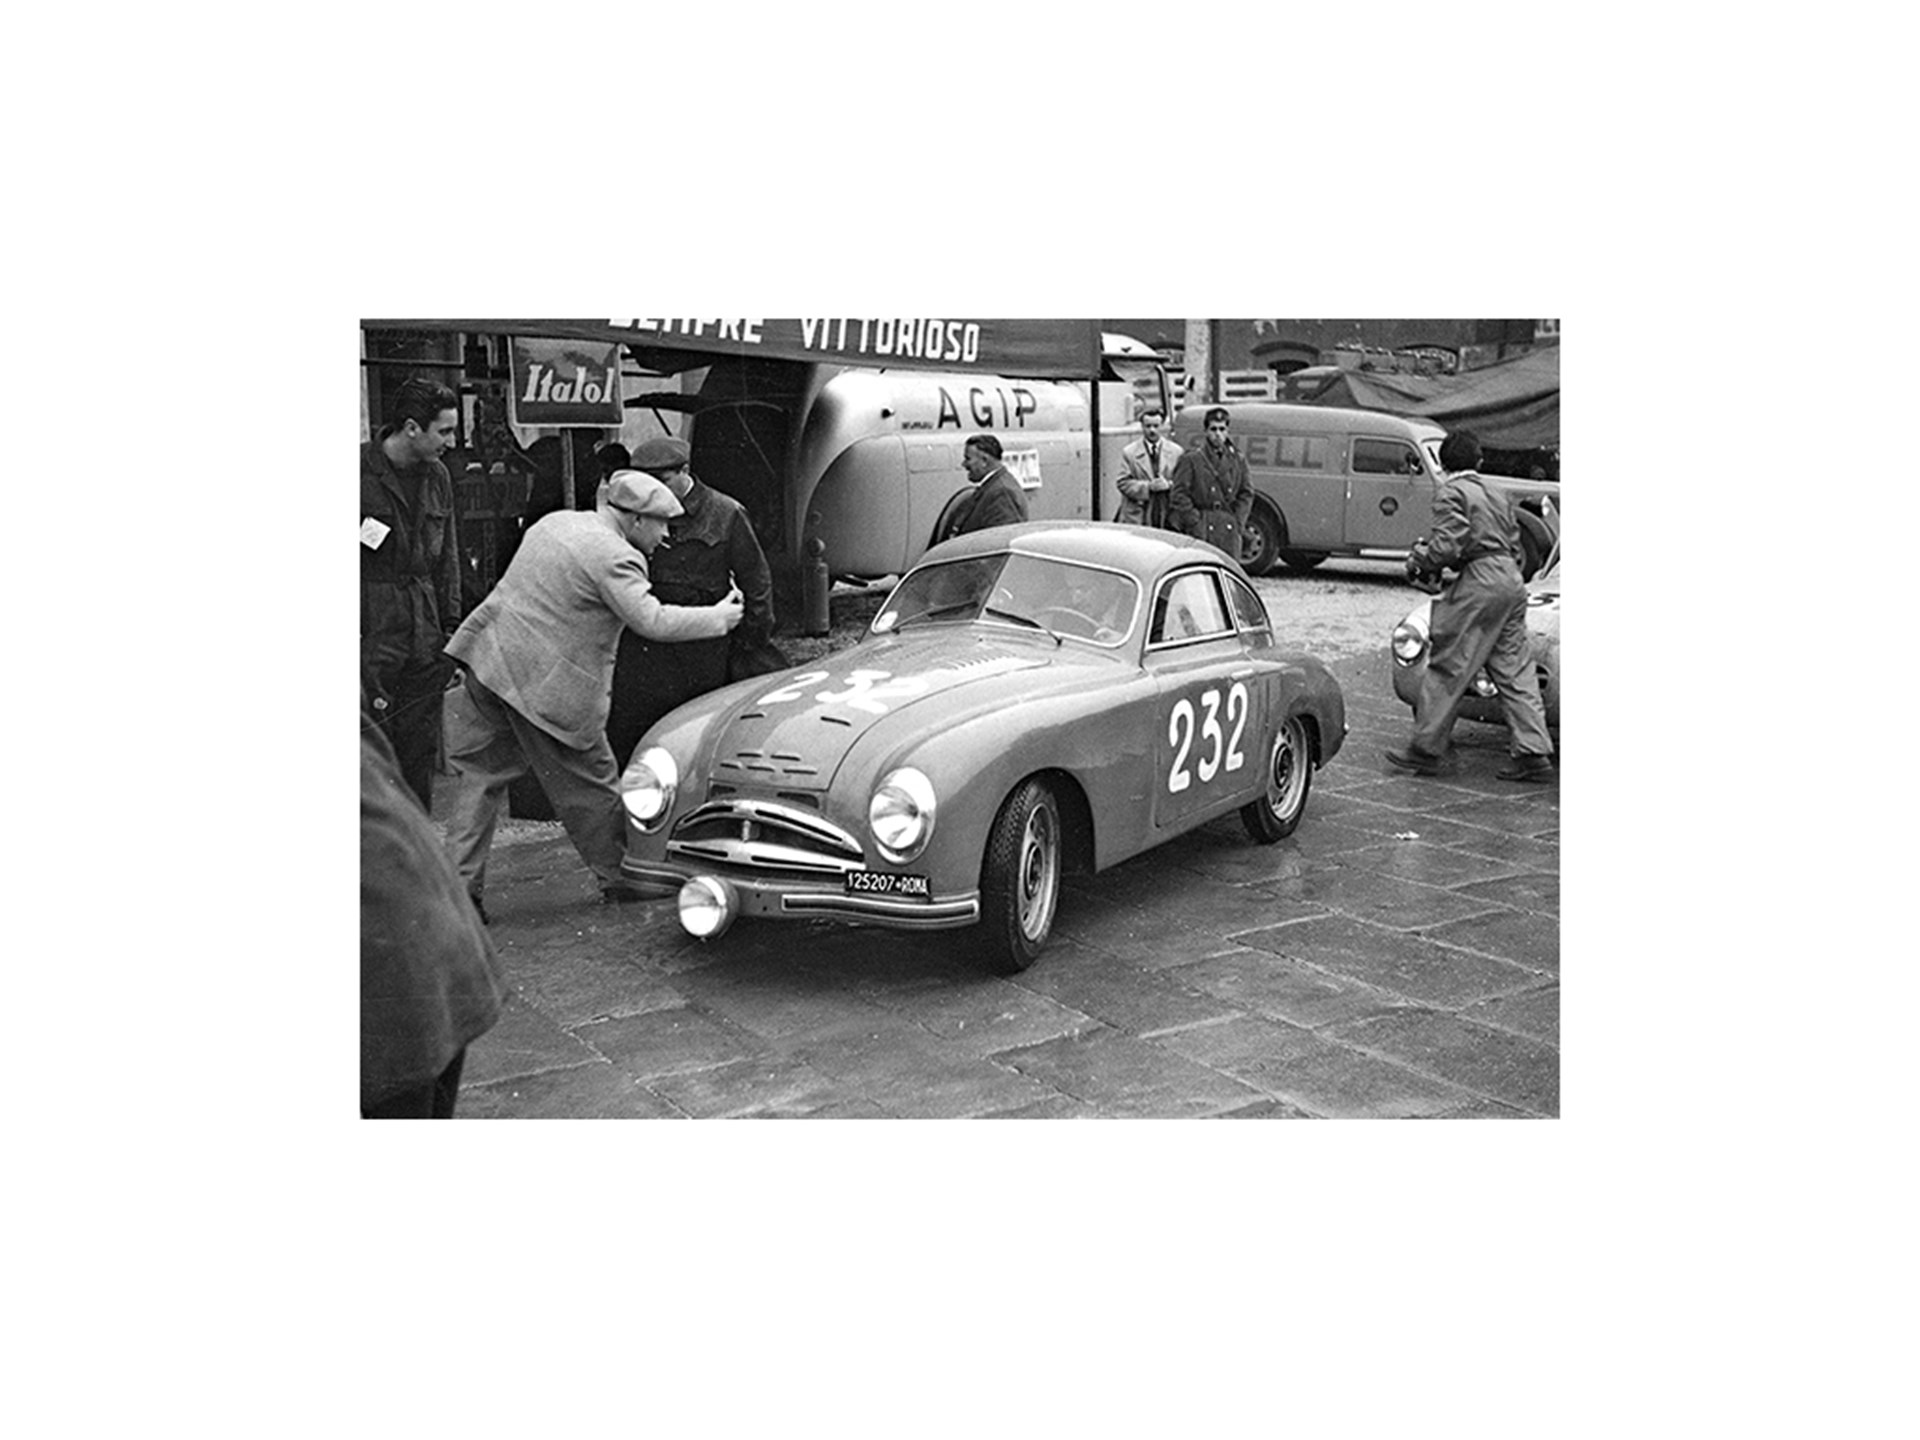 The Fiat-Patriarca at the 1950 Mille Miglia, where it finished 24th overall and 1st in class.